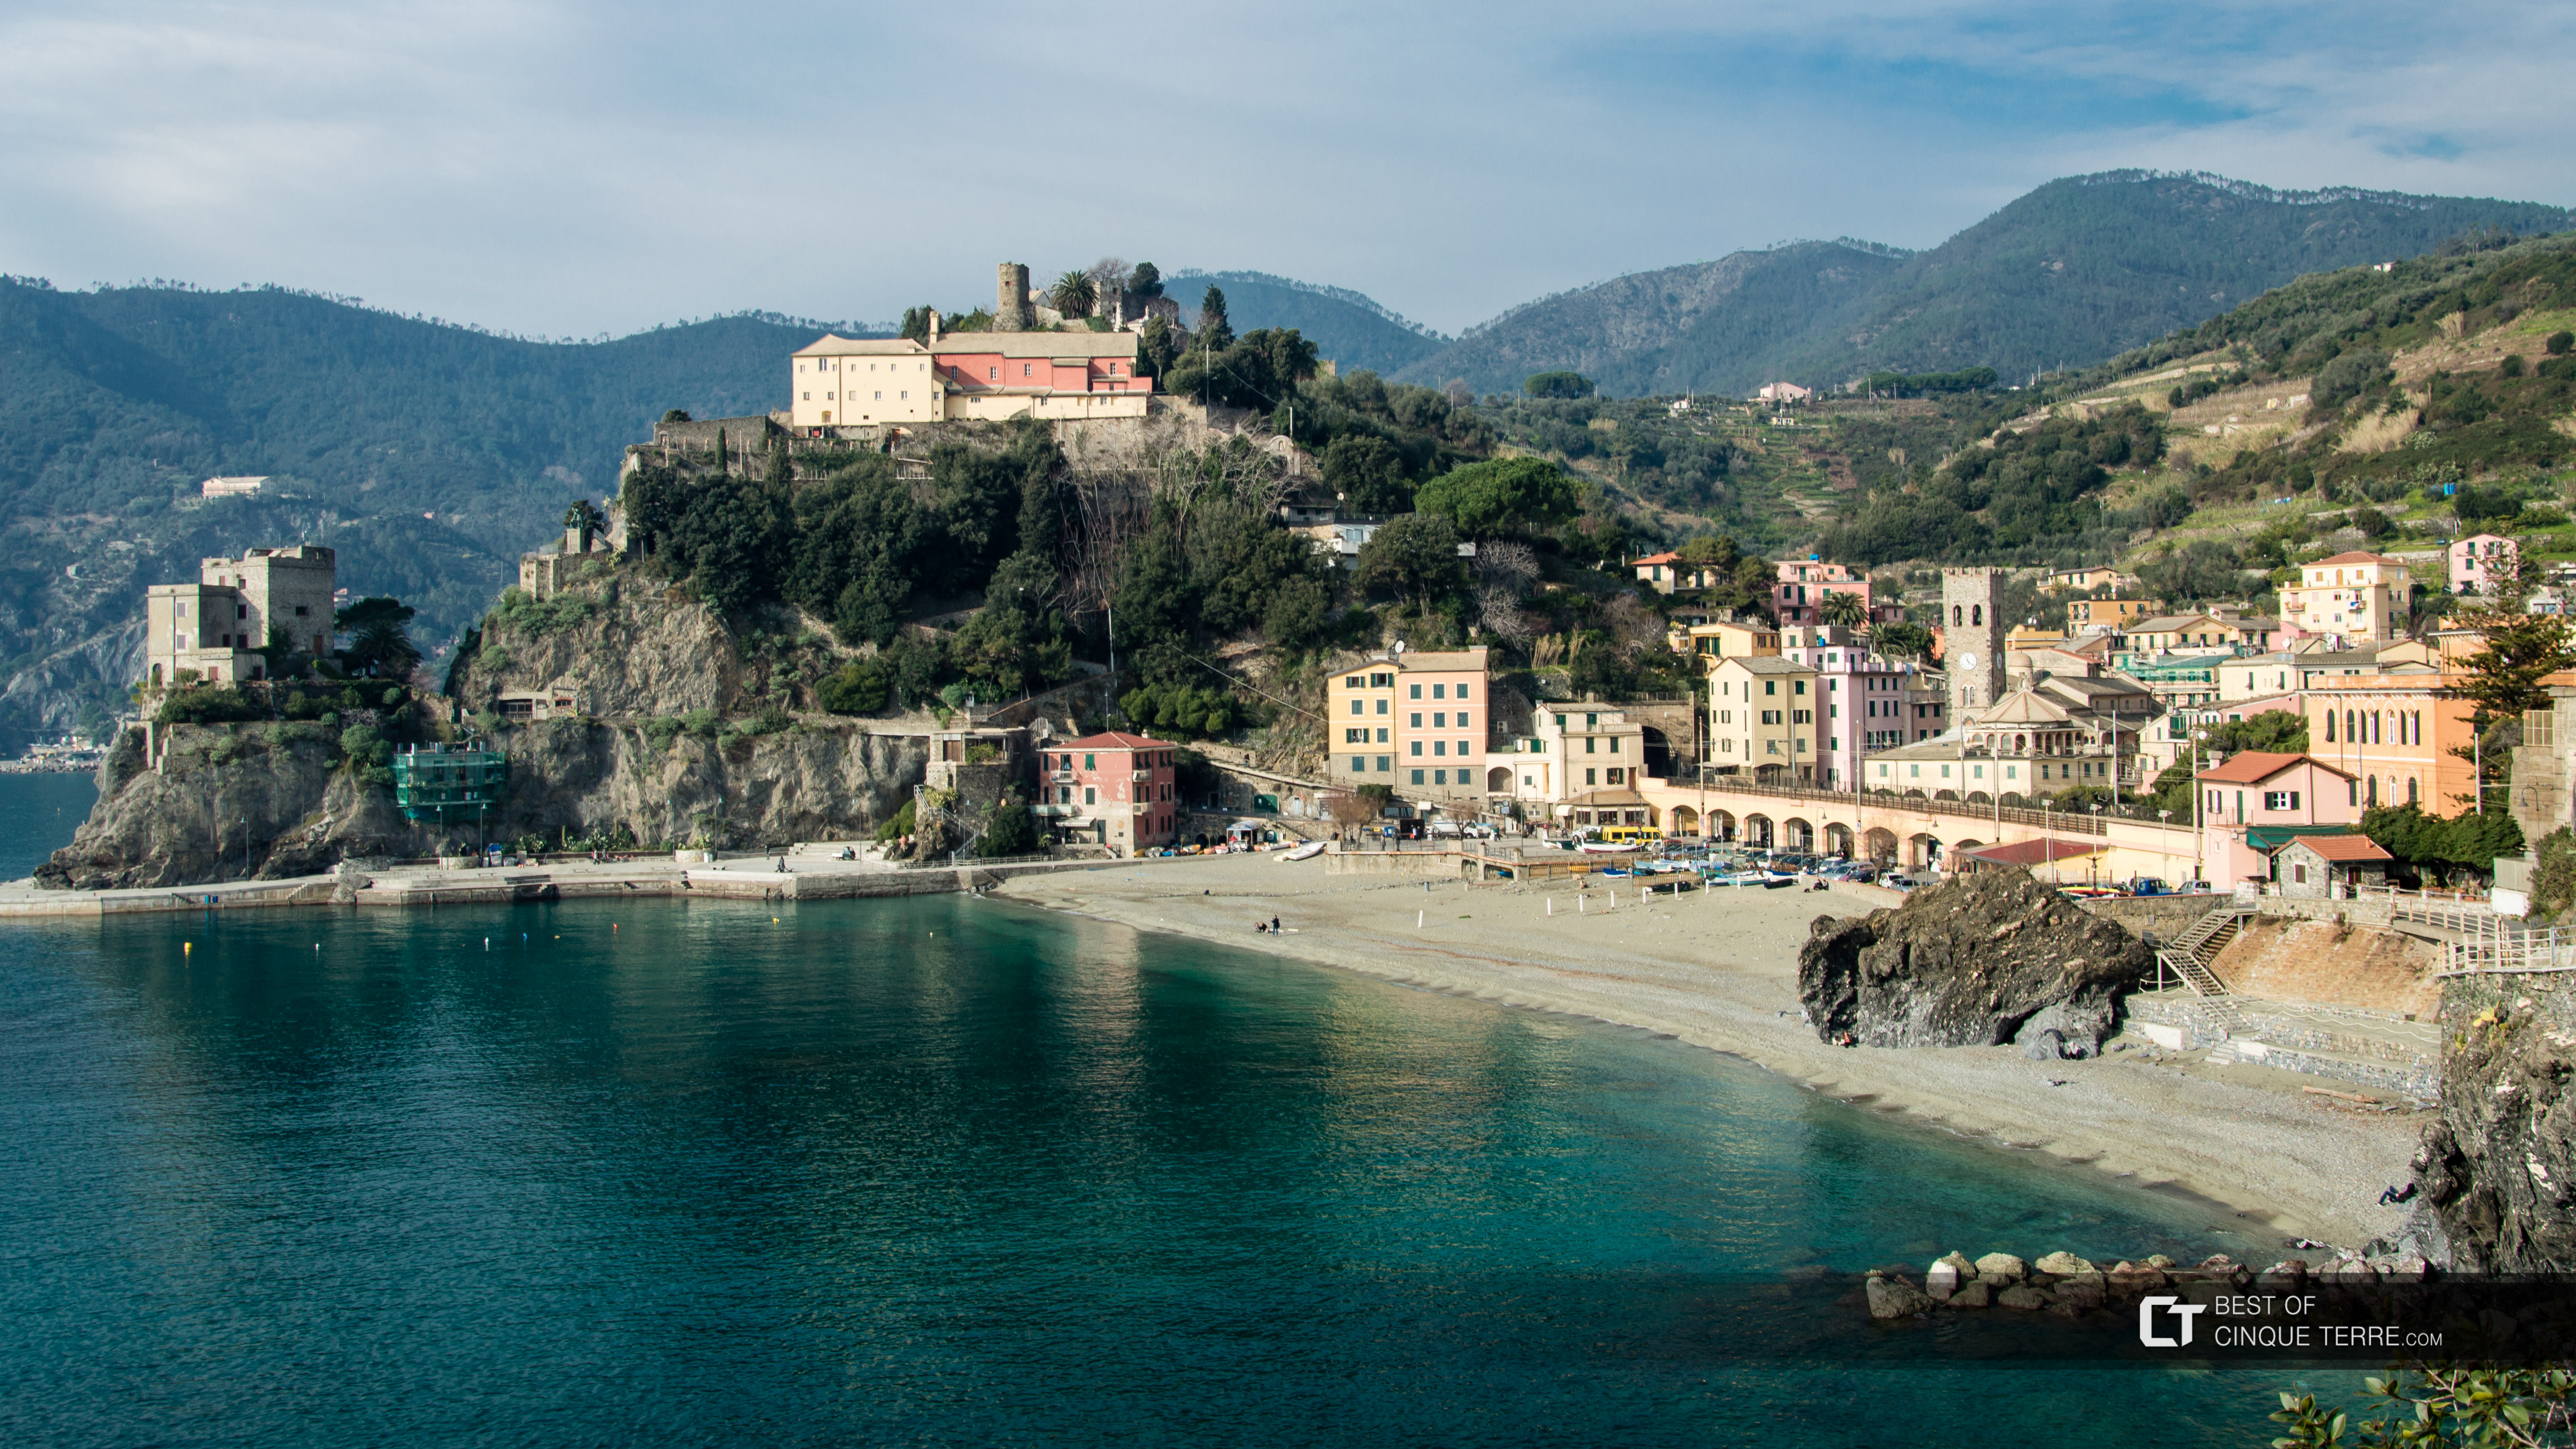 The historical center seen from the Blue Trail, Monterosso al Mare, Cinque Terre, Italy